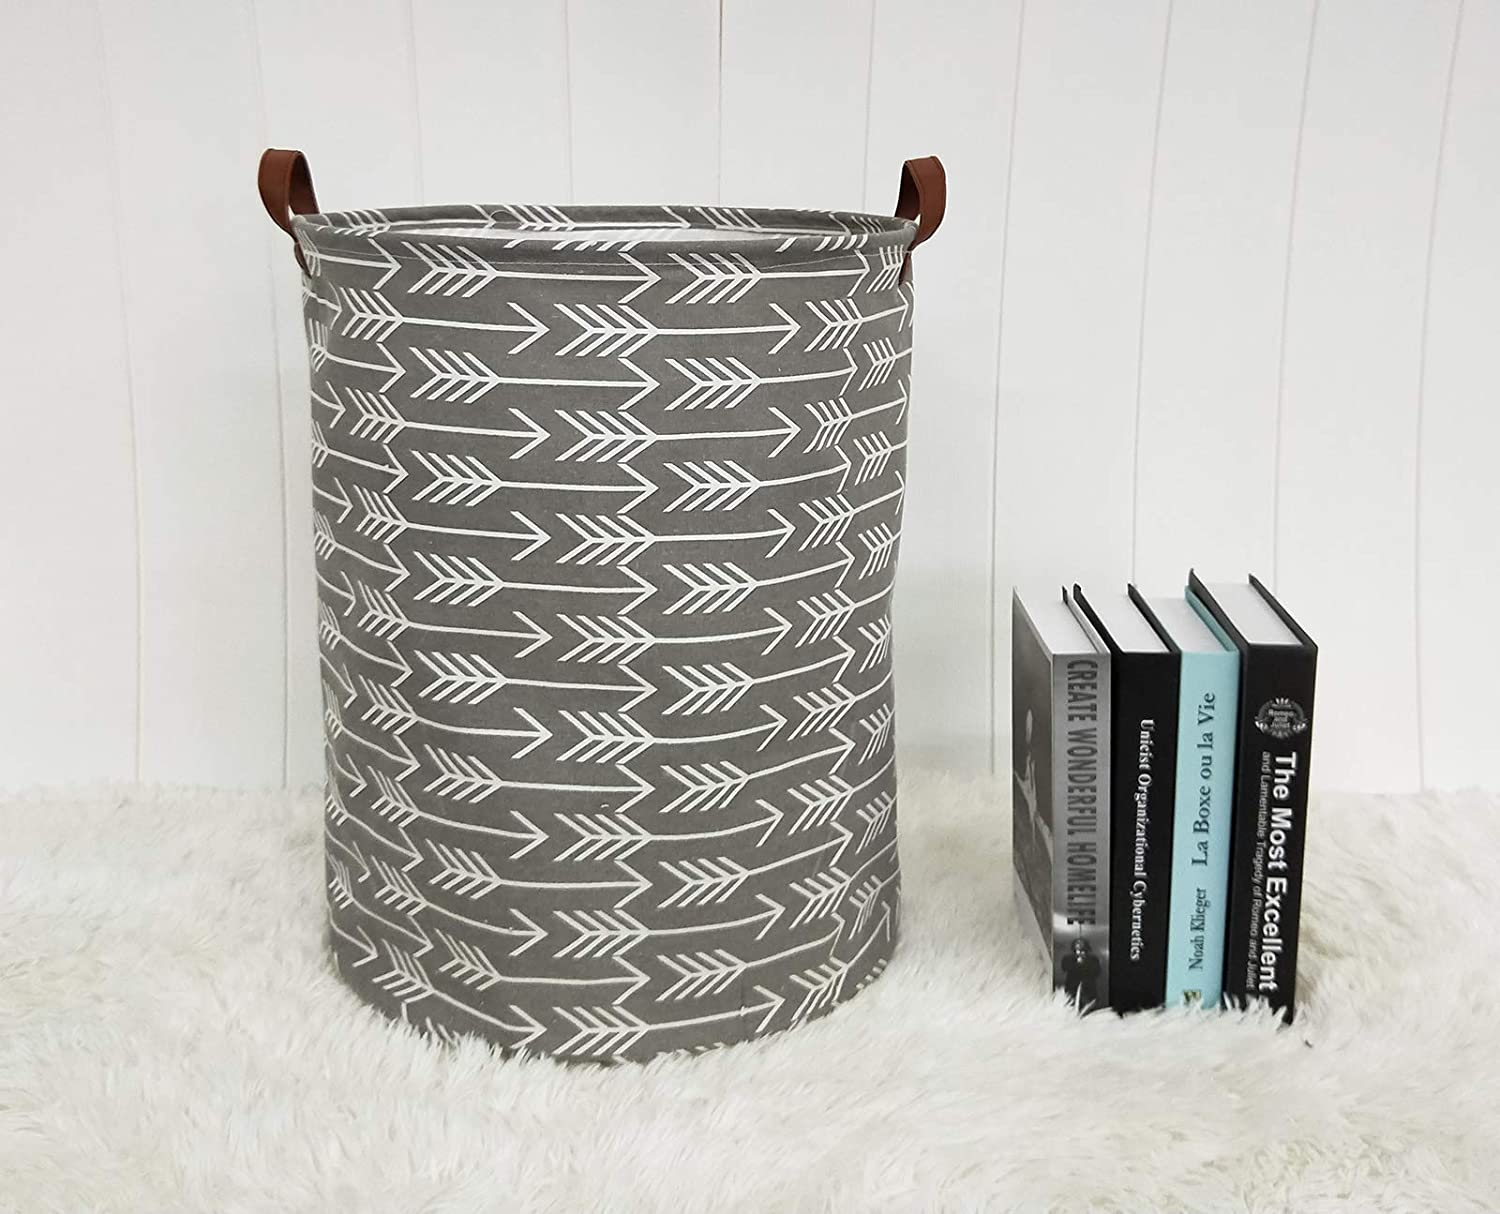 Grey Arrows HIYAGON Large Storage Baskets,Waterproof Laundry Baskets,Collapsible Canvas Basket for Storage Bin for Kids Room,Toy Organizer,Home Decor,Baby Hamper